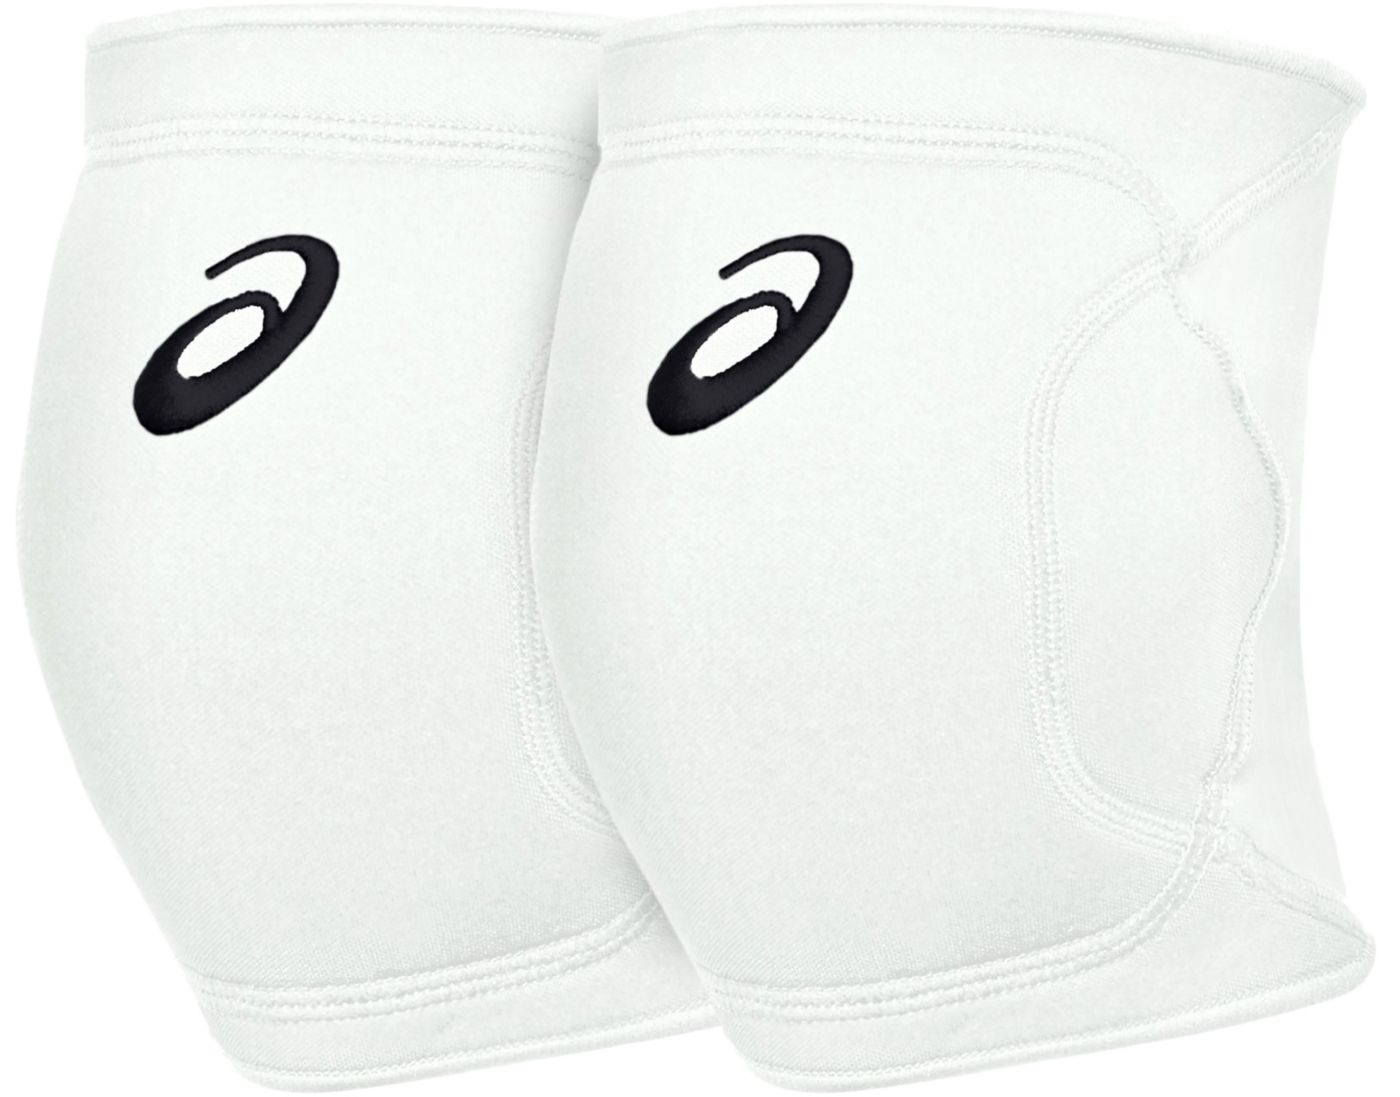 Asics Youth Gel Conform II Volleyball Knee Pads